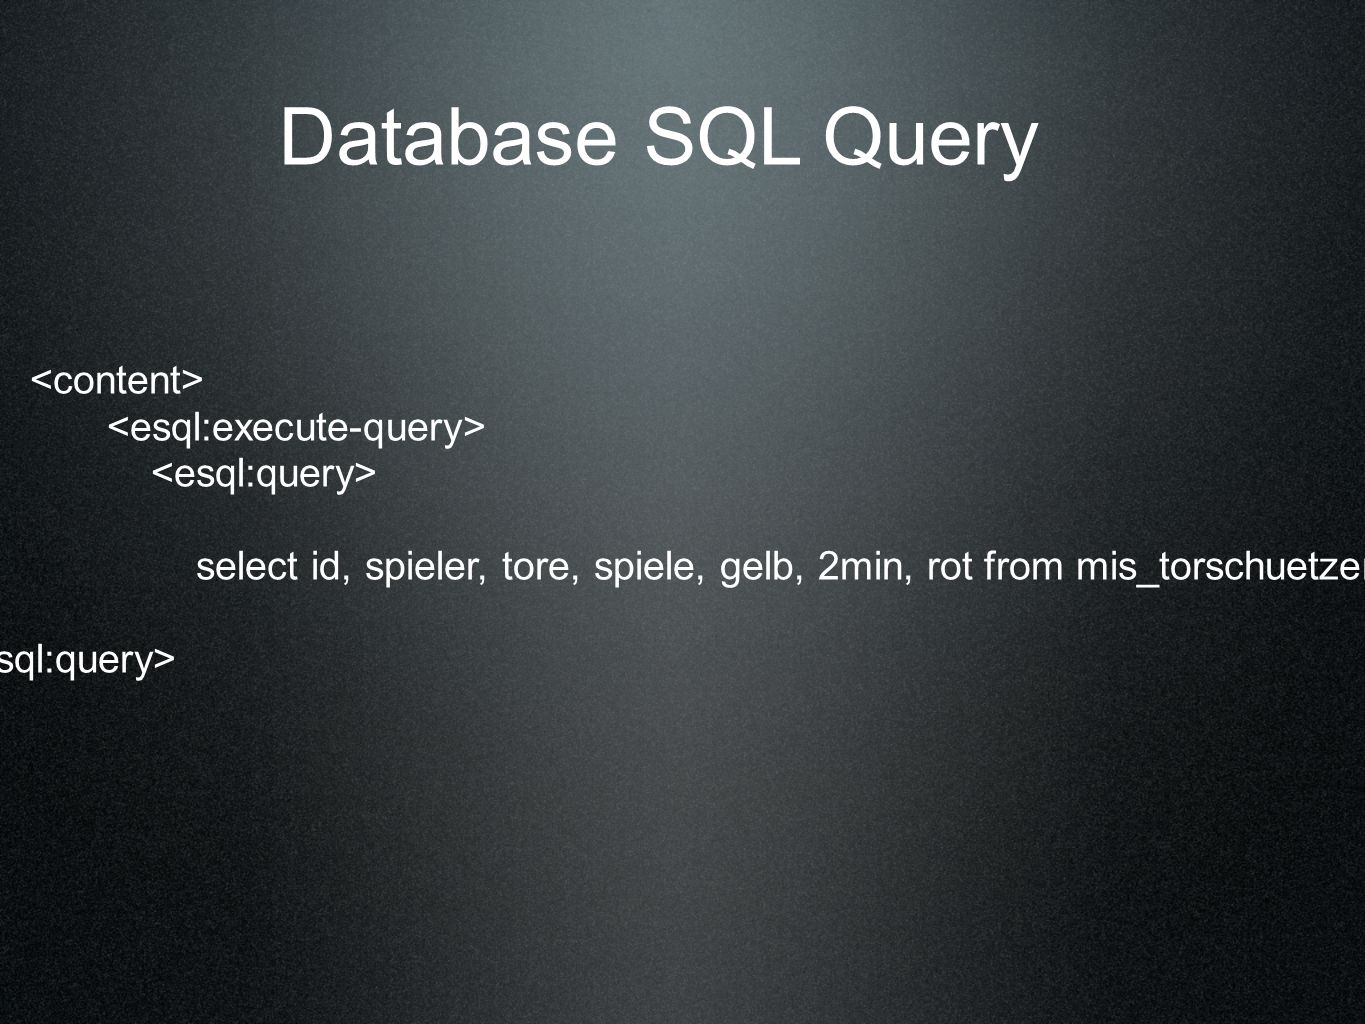 select id, spieler, tore, spiele, gelb, 2min, rot from mis_torschuetzen... Database SQL Query